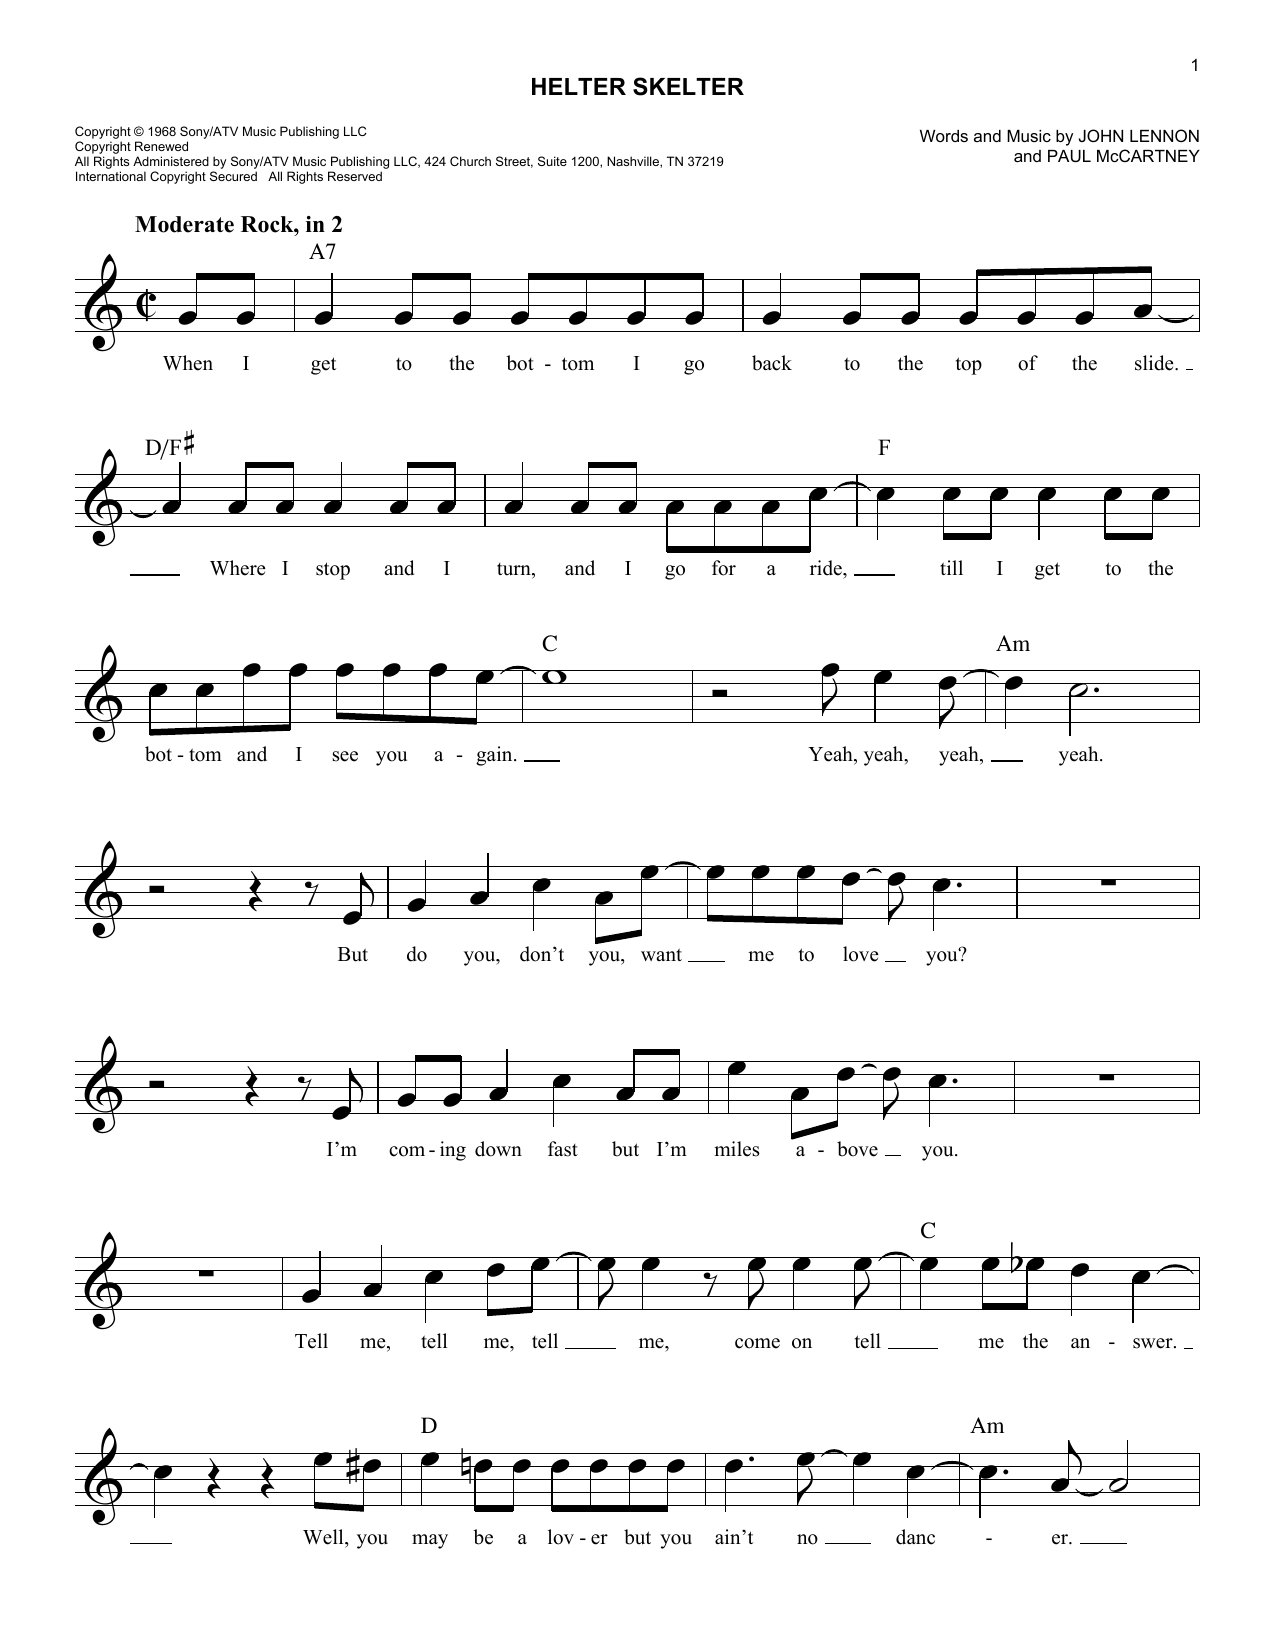 Helter skelter chords by the beatles melody line lyrics chords helter skelter sheet music hexwebz Image collections